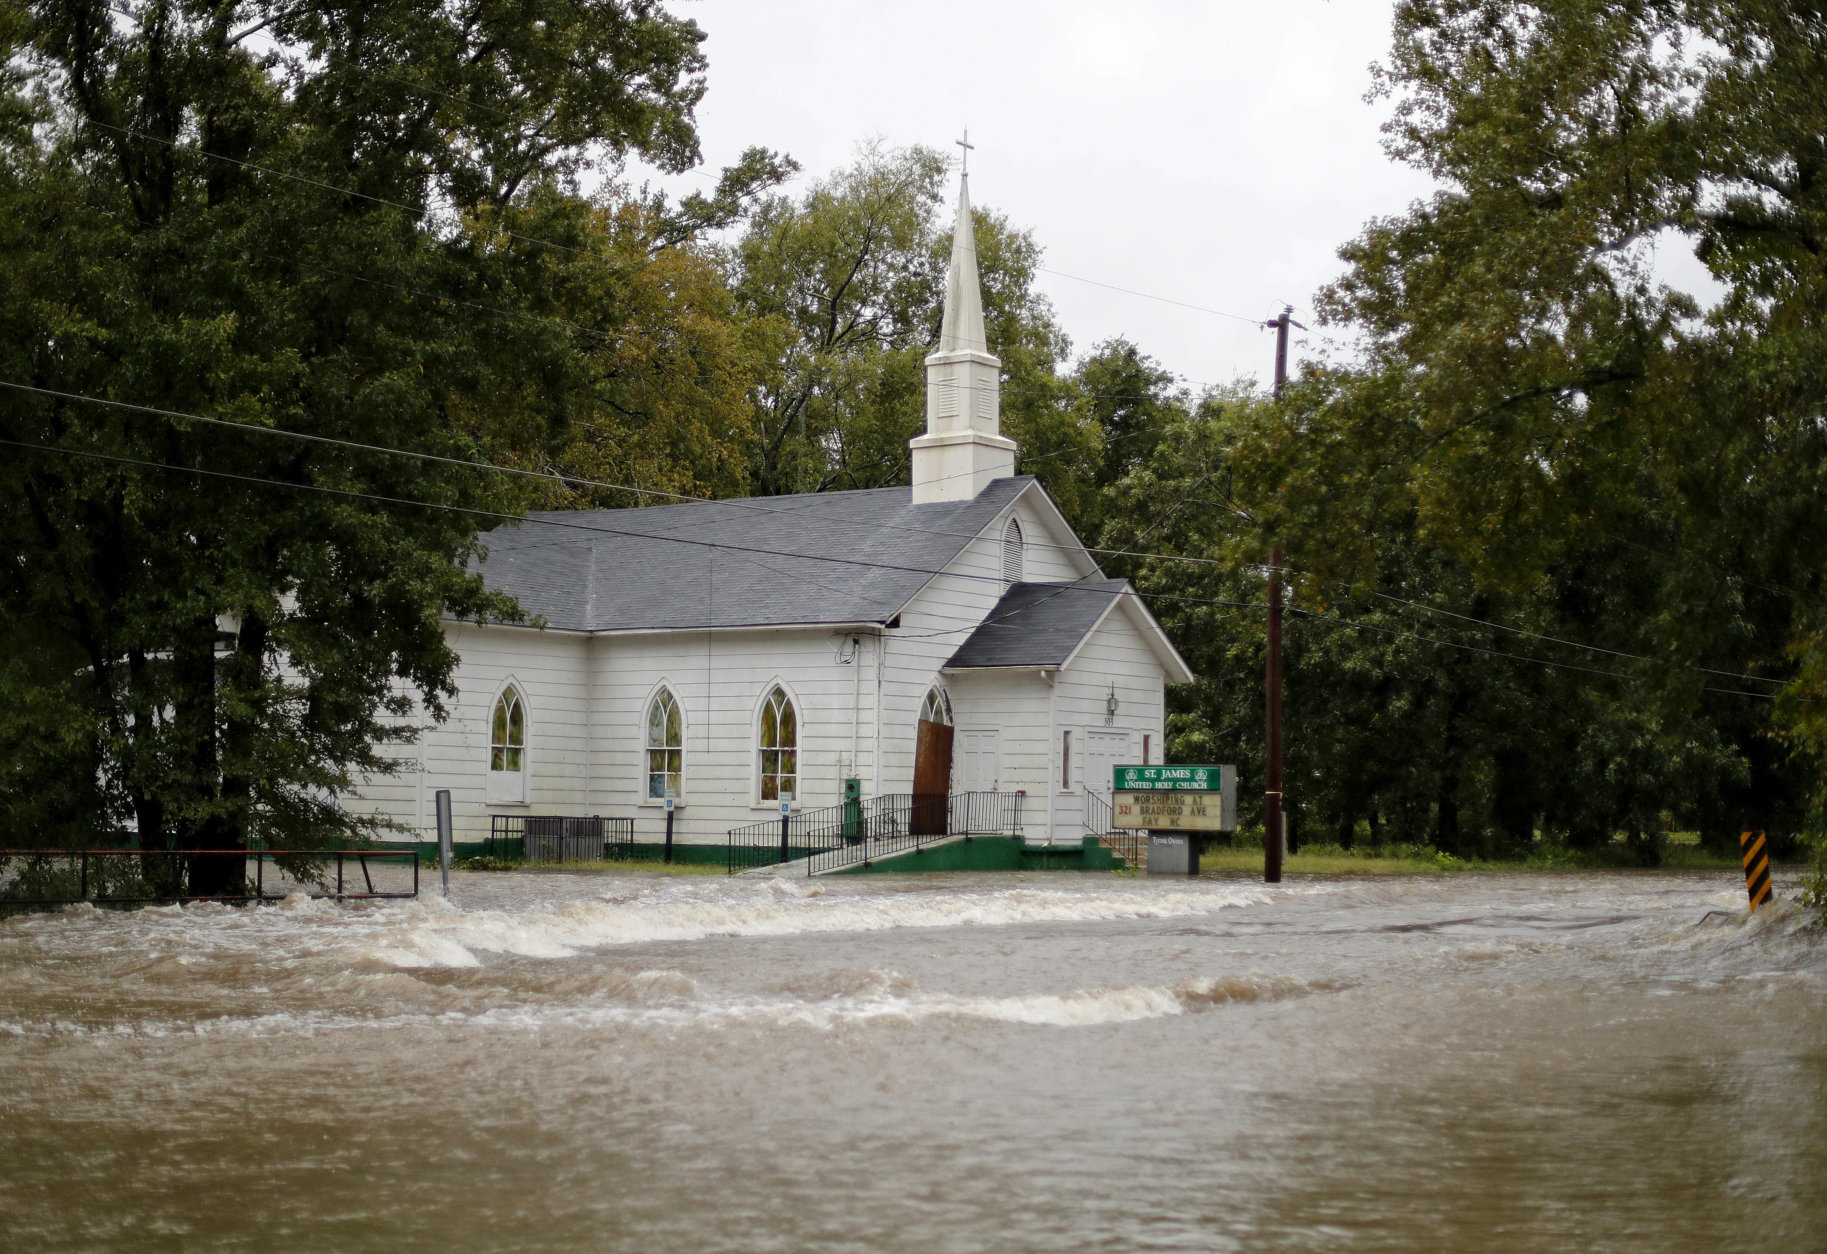 A church flooded by Hurricane Matthew two years ago is surrounded by rushing water as Florence continues to dump heavy rain in Fayetteville, N.C., Sunday, Sept. 16, 2018. (AP Photo/David Goldman)